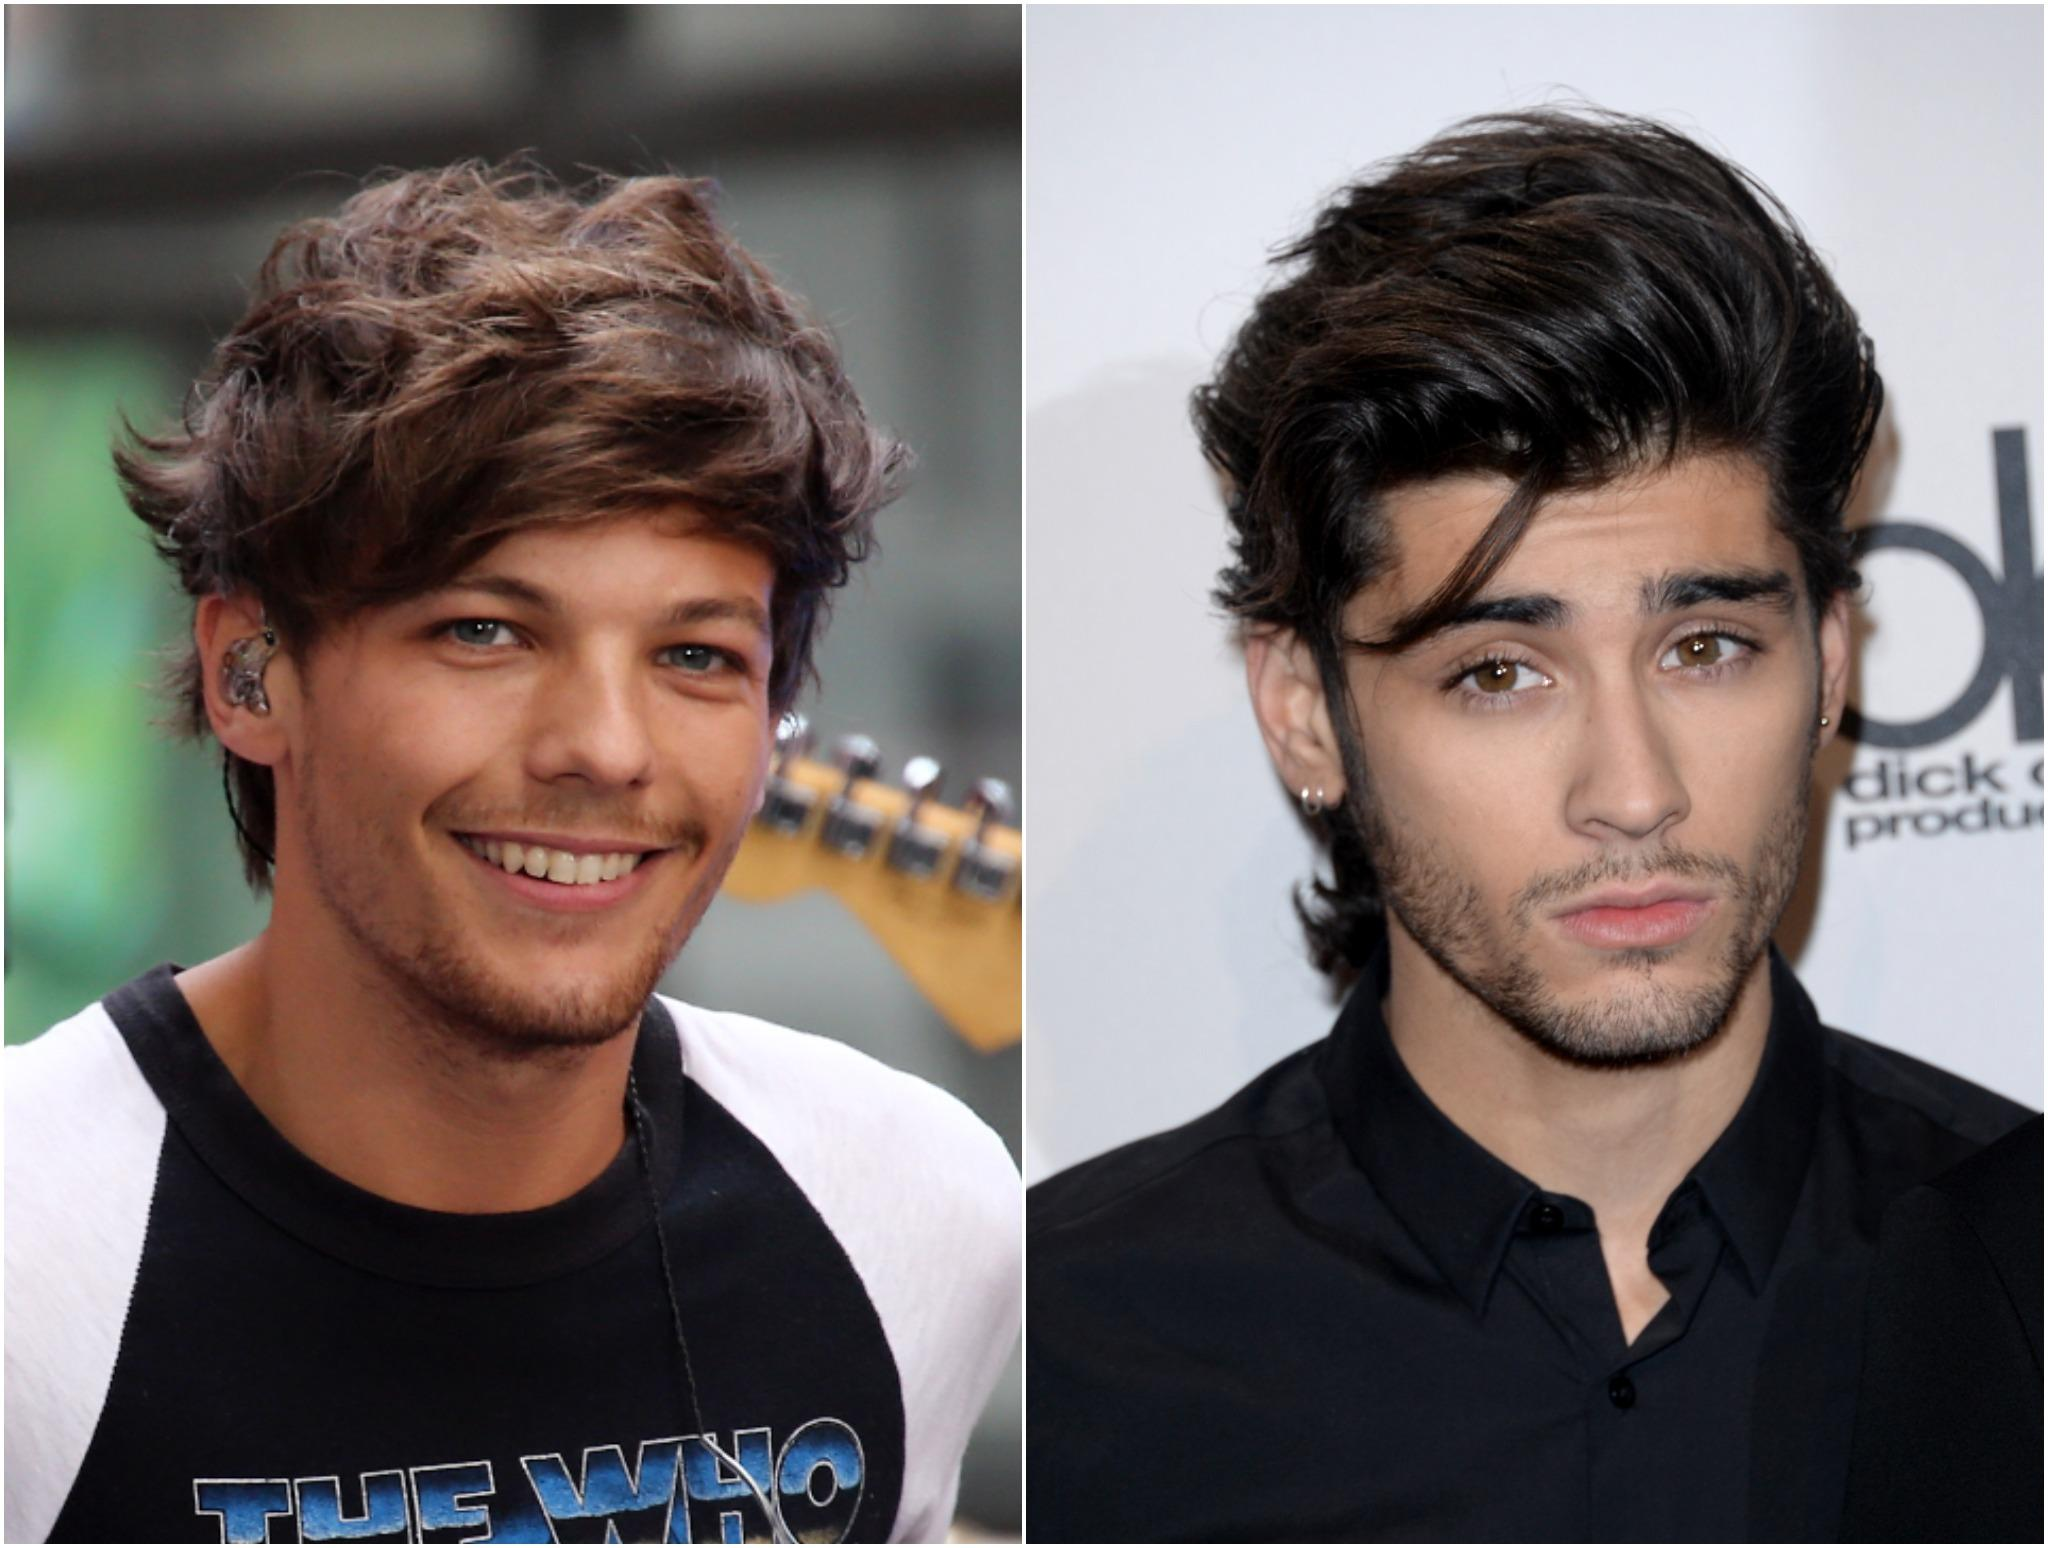 Louis Tomlinson Reacts To Zayn Malik's Post About Becoming A Dad And Fans Can't Contain Their Feels!